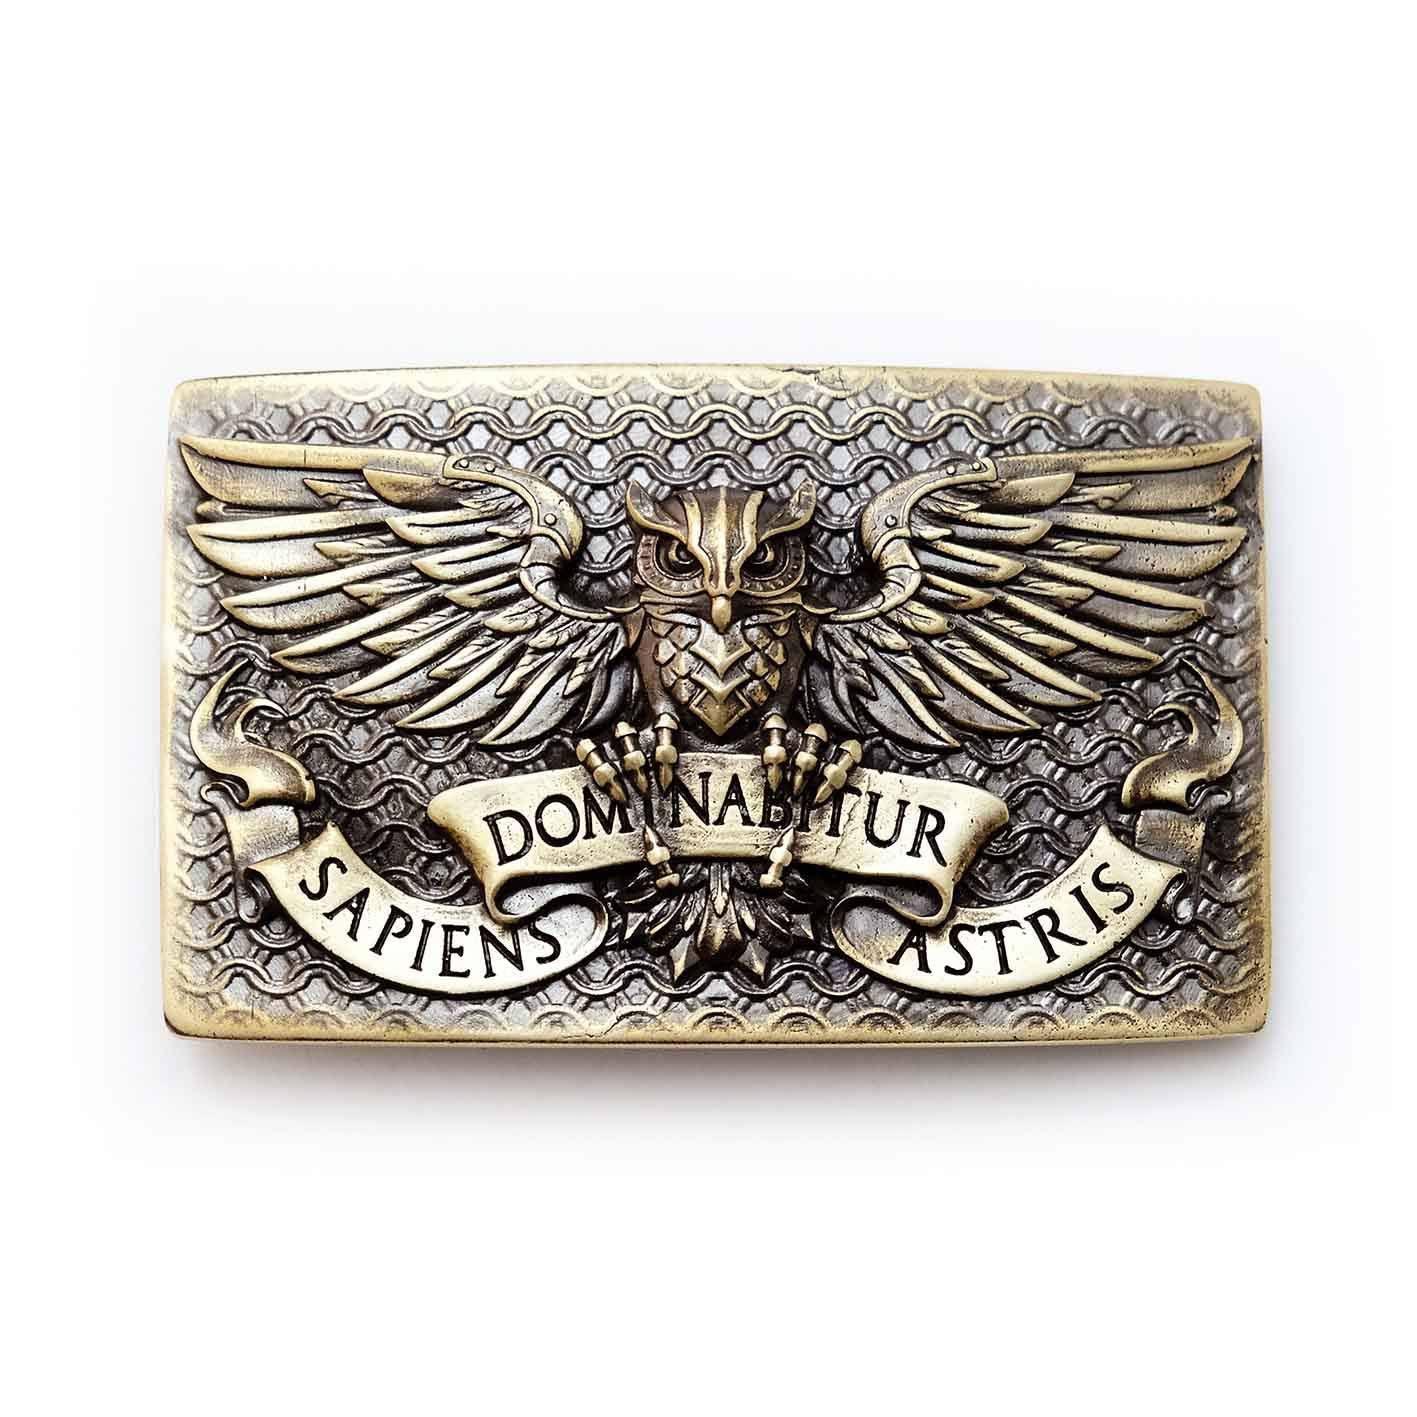 Fighting Spasm price Eagle SEAL limited product Owl belt buckle Bub bird fighting Wild